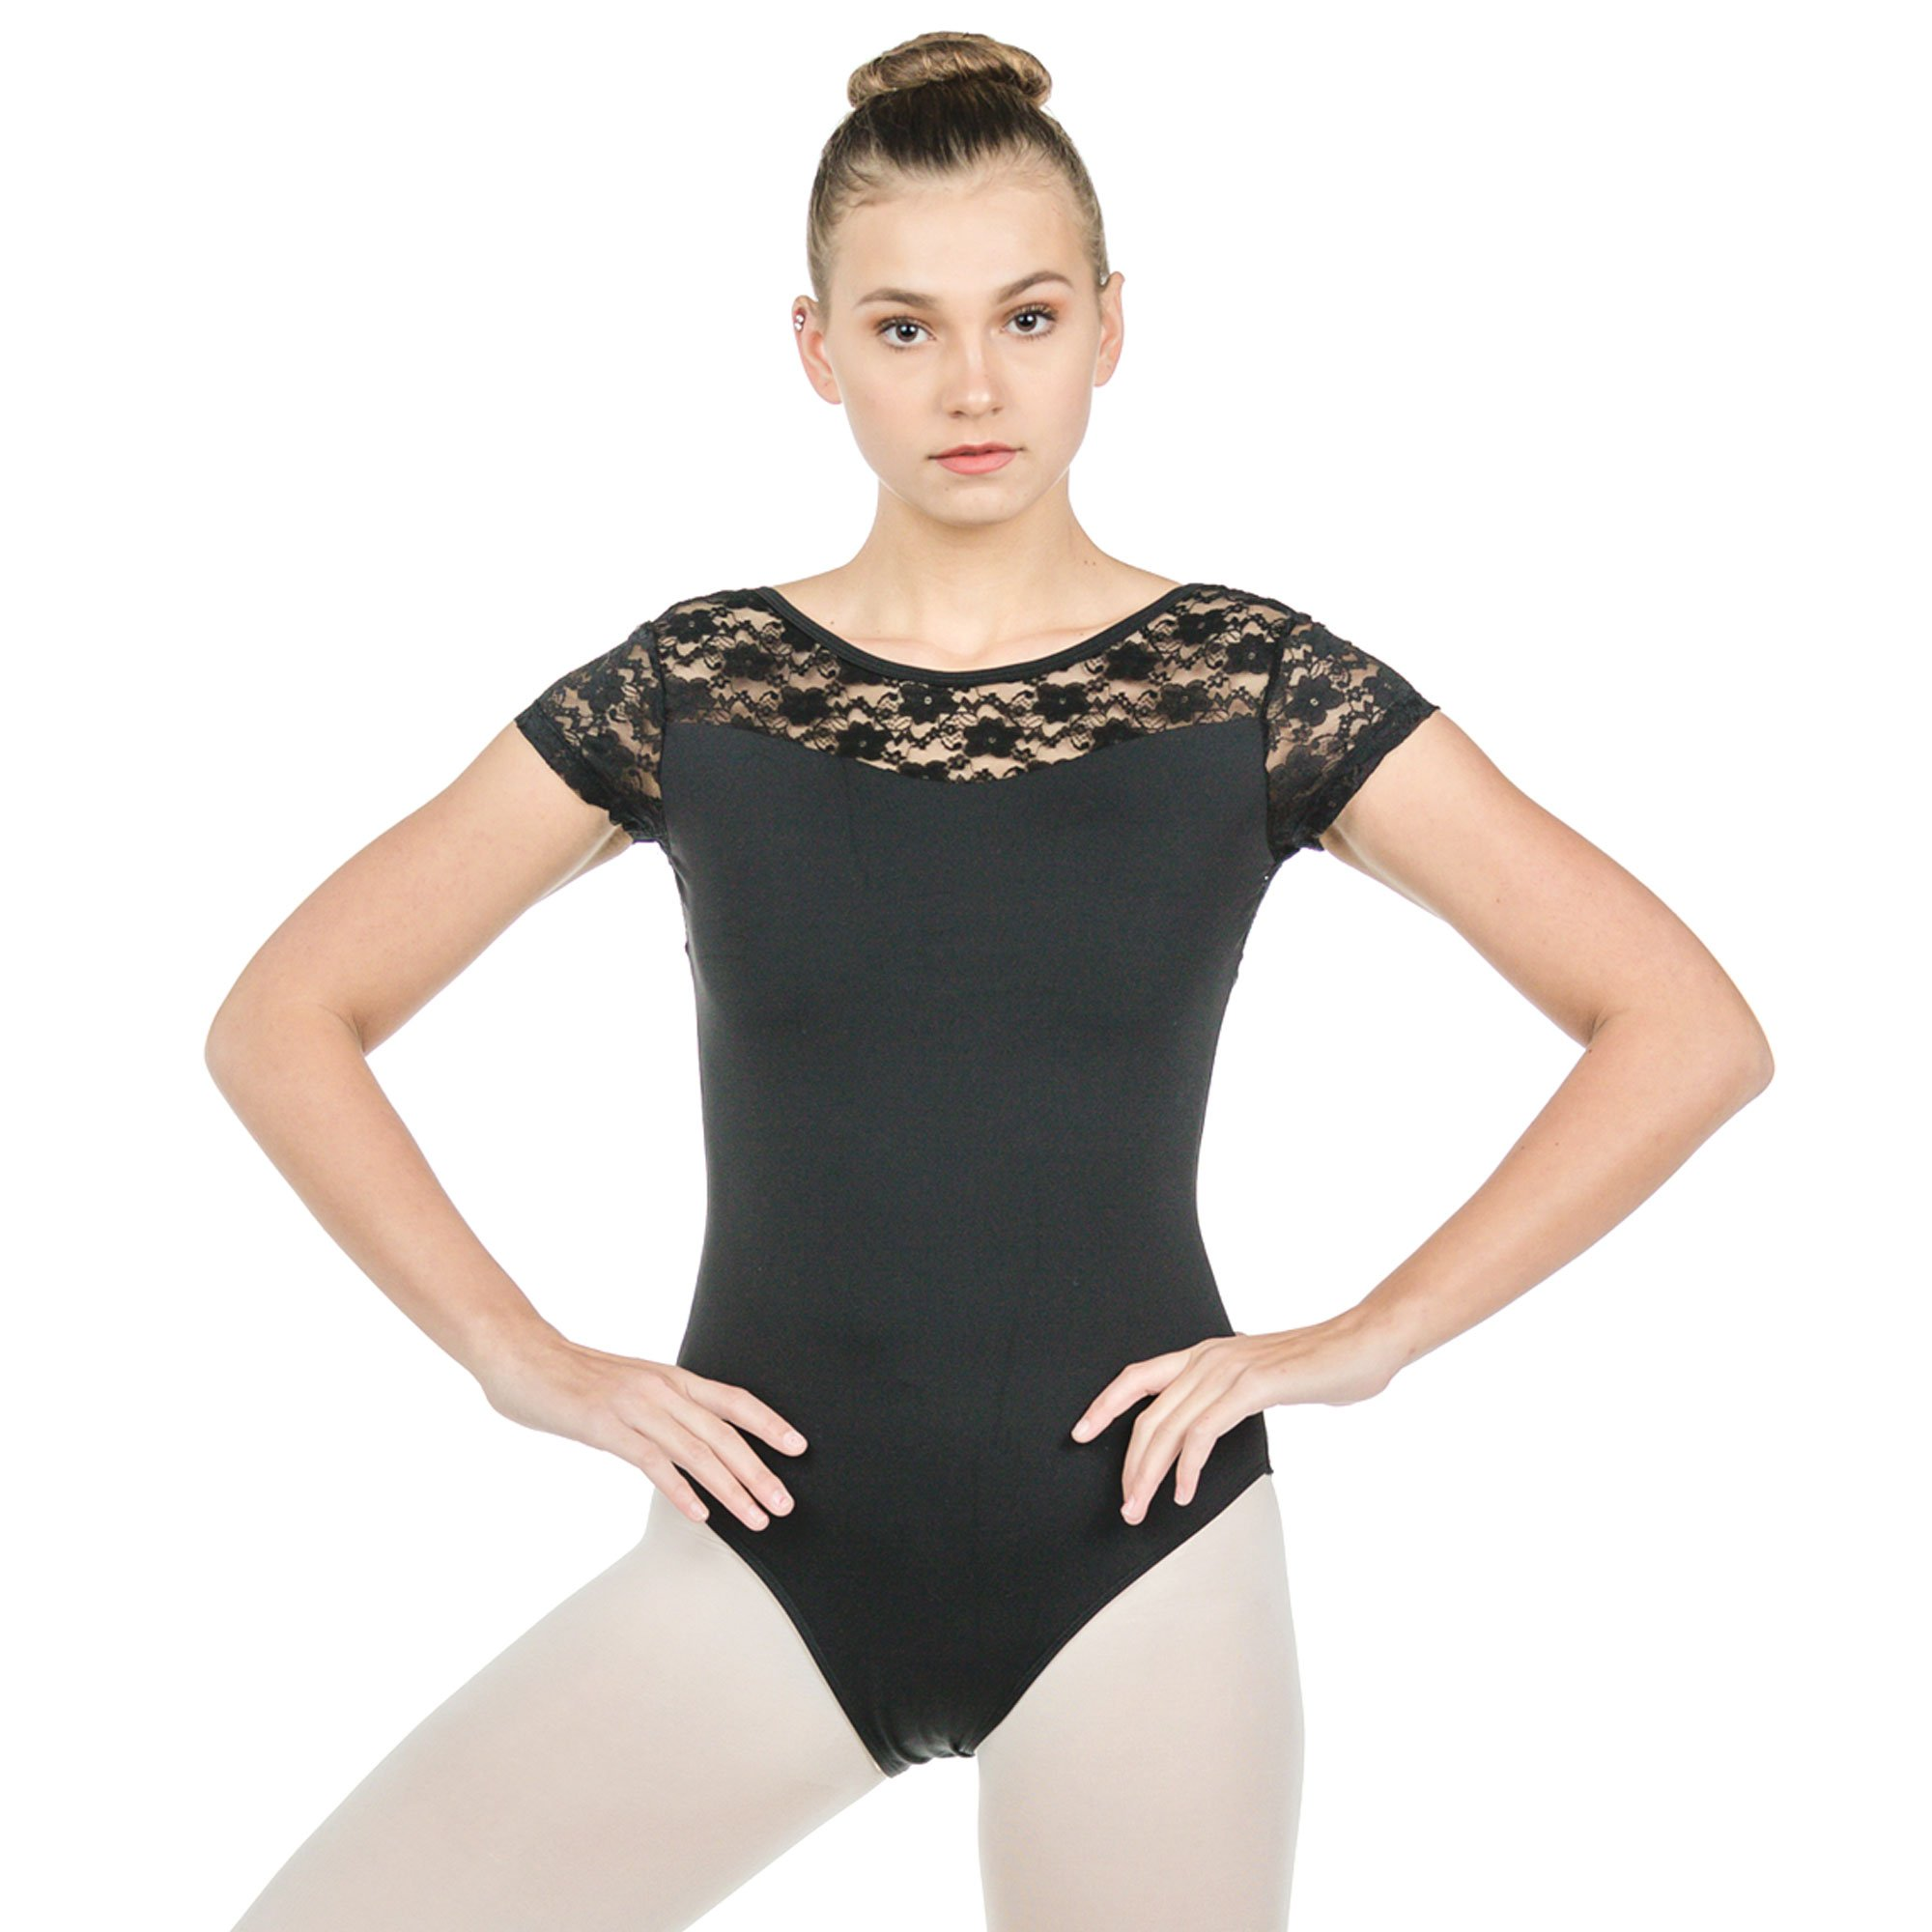 Baiwu Adult Cap Sleeve Lace Up Round Back Leotard